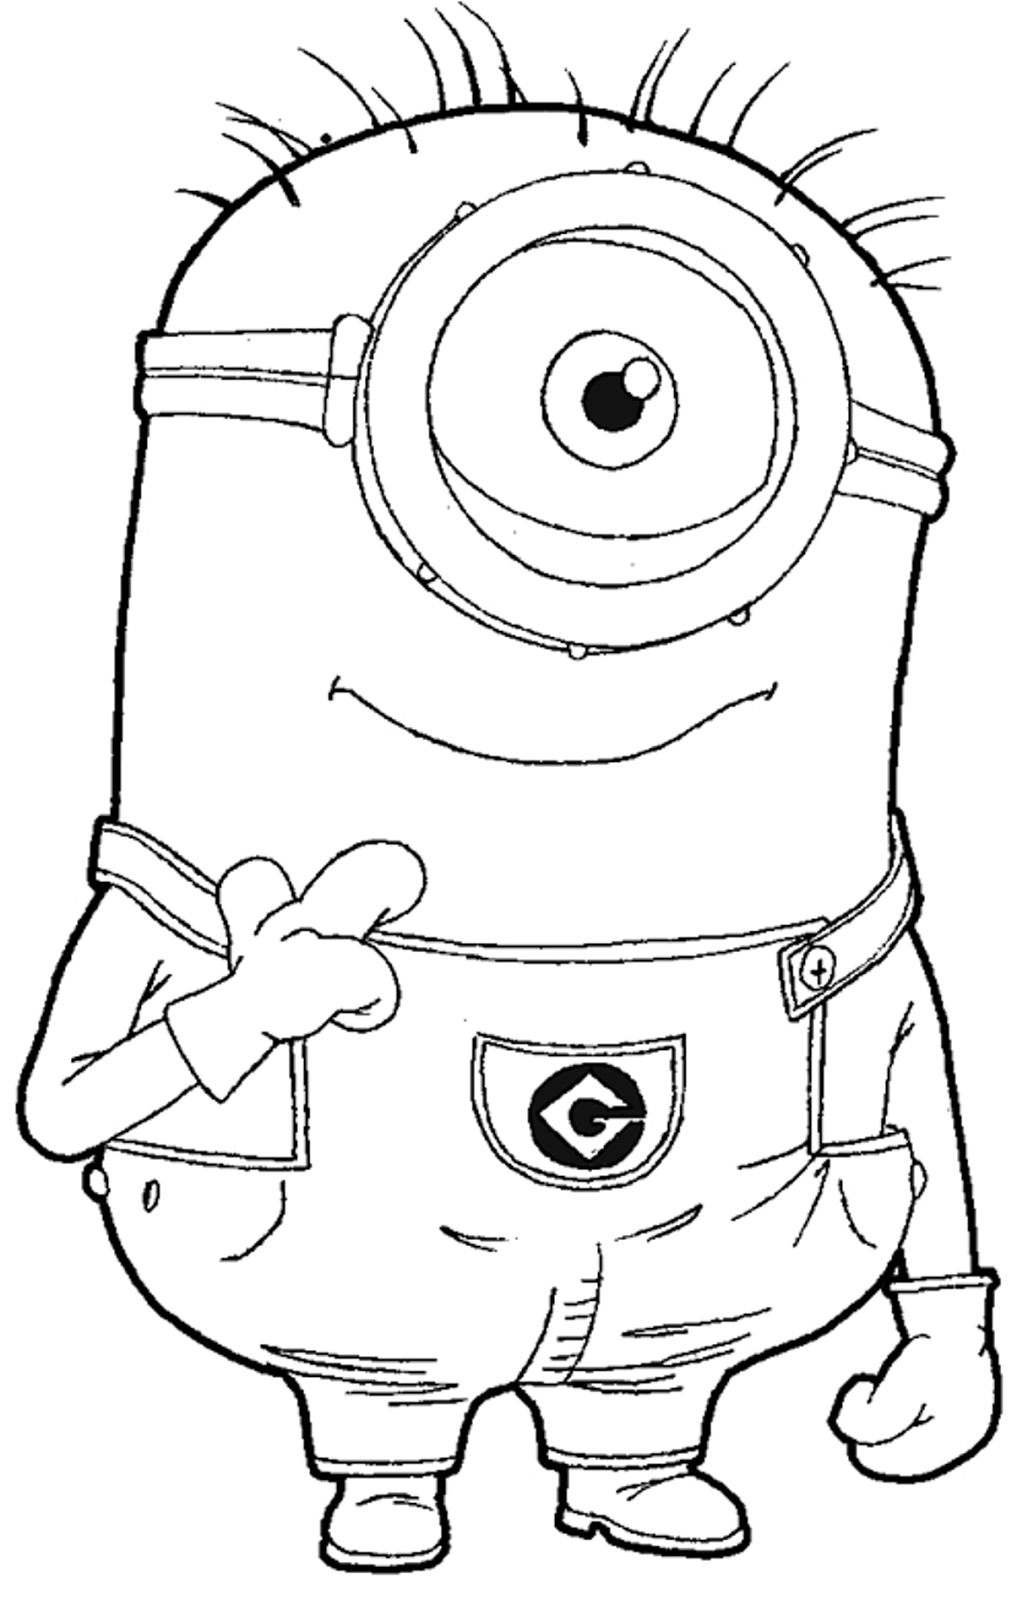 coloring minion pages with santa - photo#34